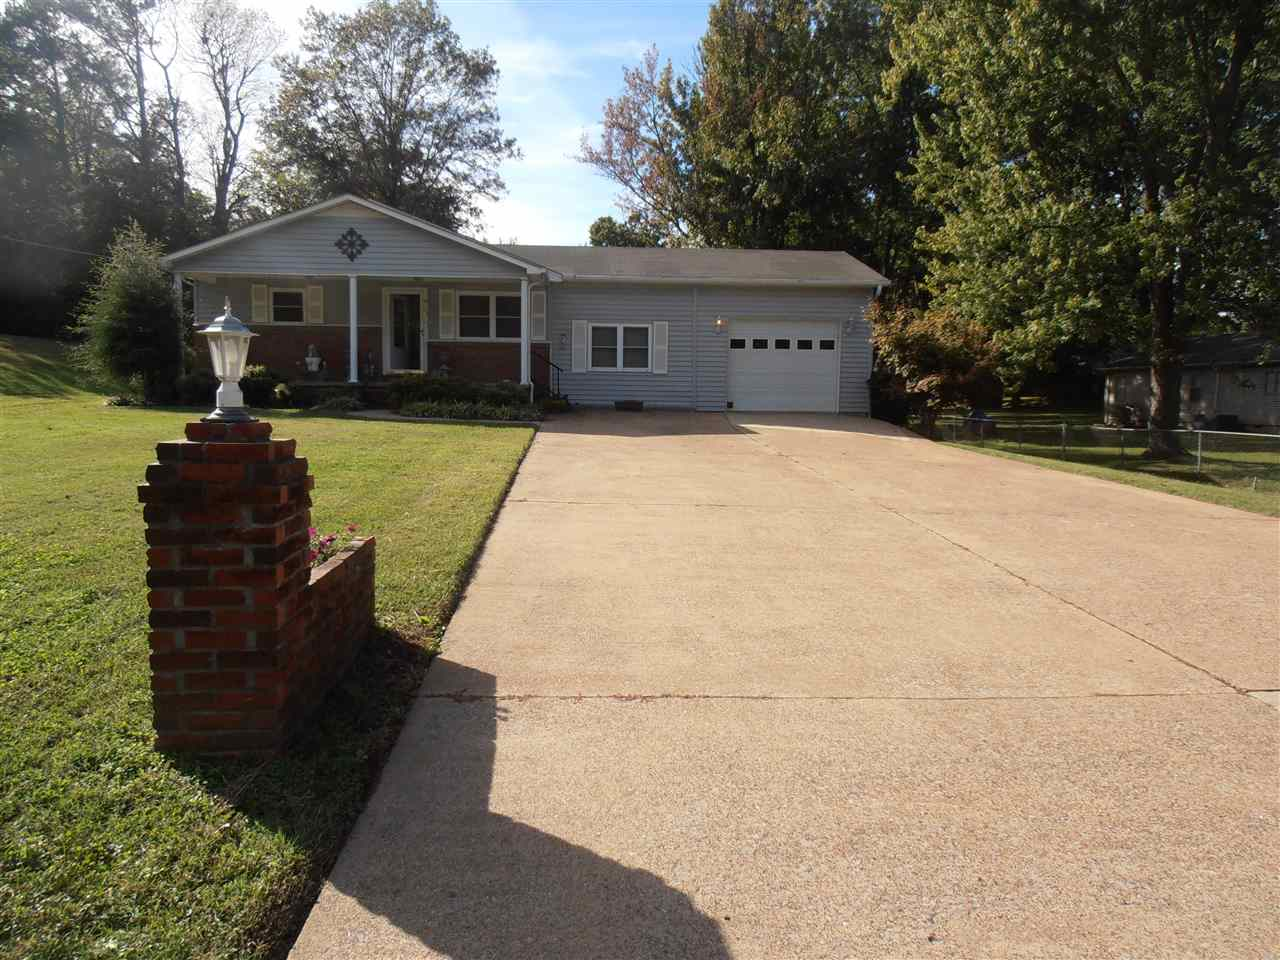 111 East Dr,Newbern,Tennessee 38059,4 Bedrooms Bedrooms,2 BathroomsBathrooms,Residential,111 East Dr,185264